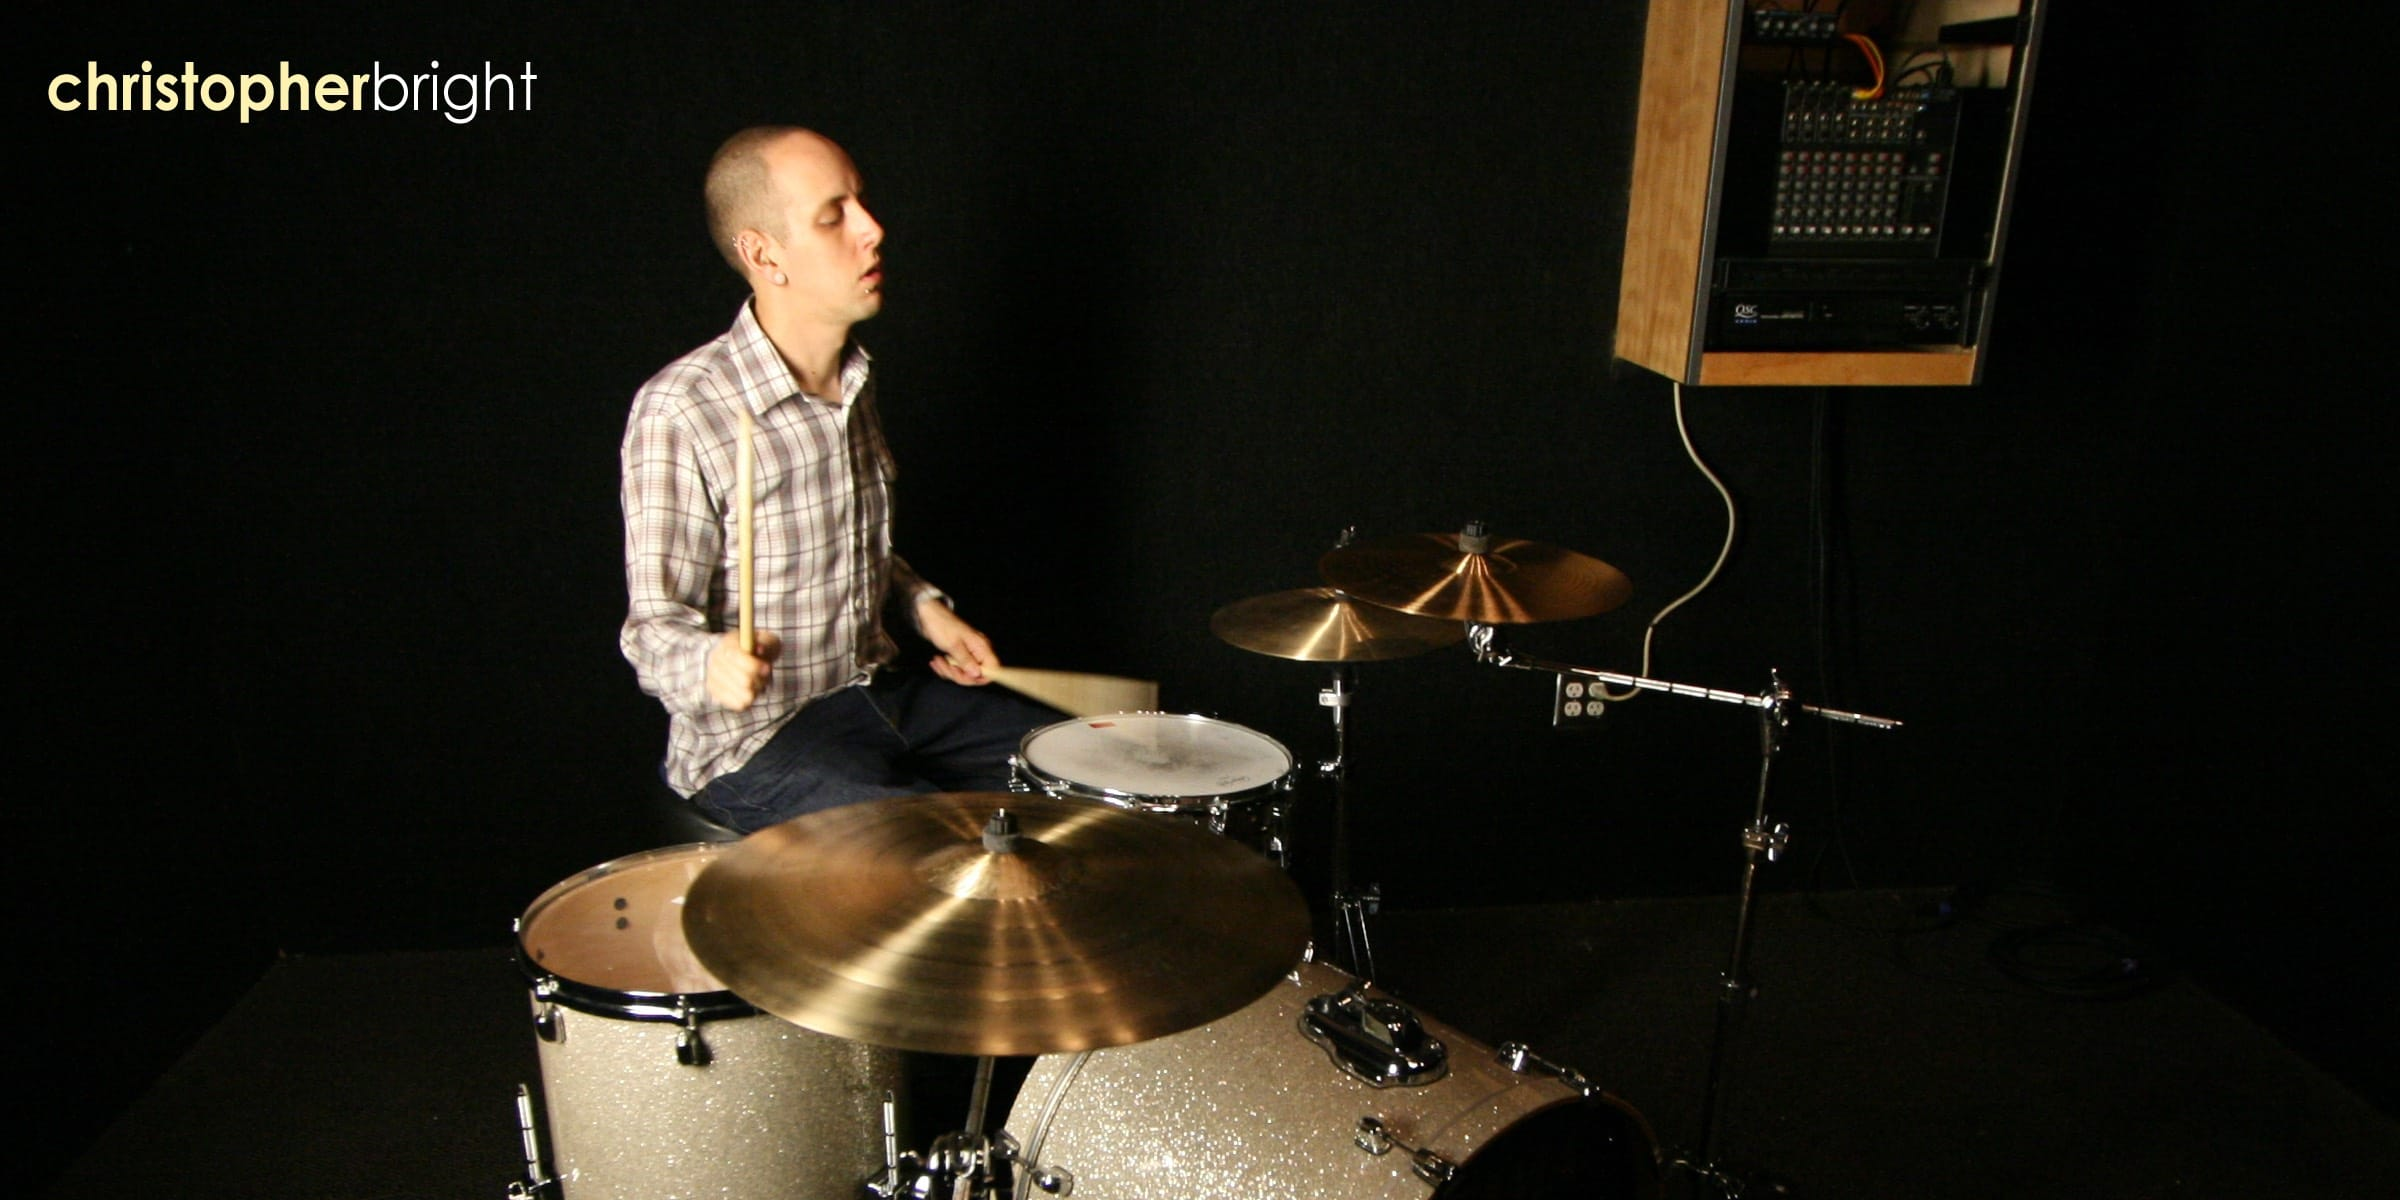 Musician Christopher Bright playing the drums